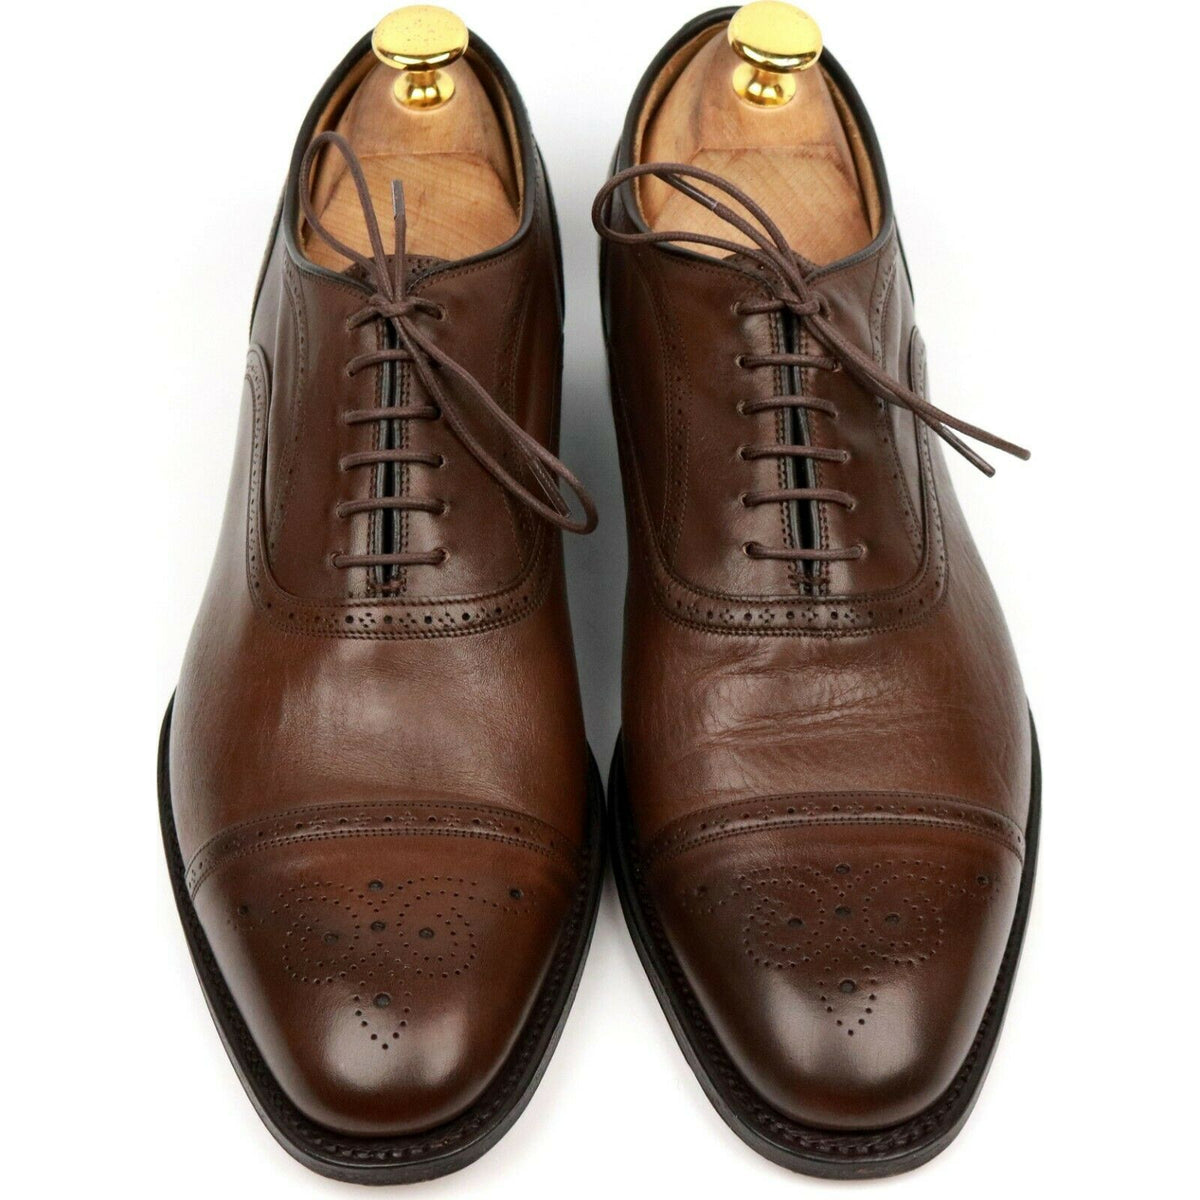 Church's 'Leek' Brown Leather Oxford Semi Brogues UK 7 F